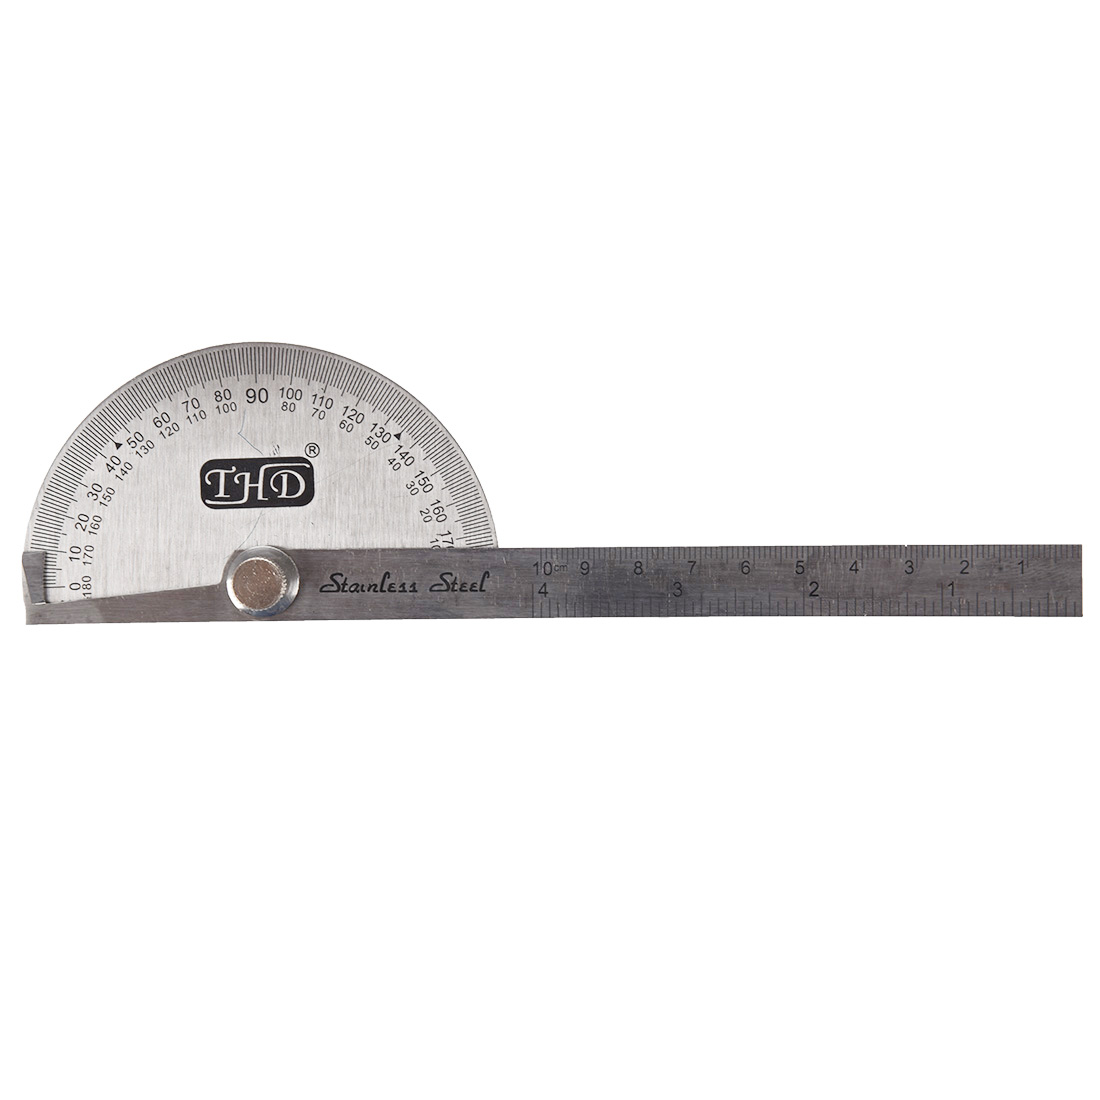 Stainless Steel Protractor W 10 Cm Measurement Ruler